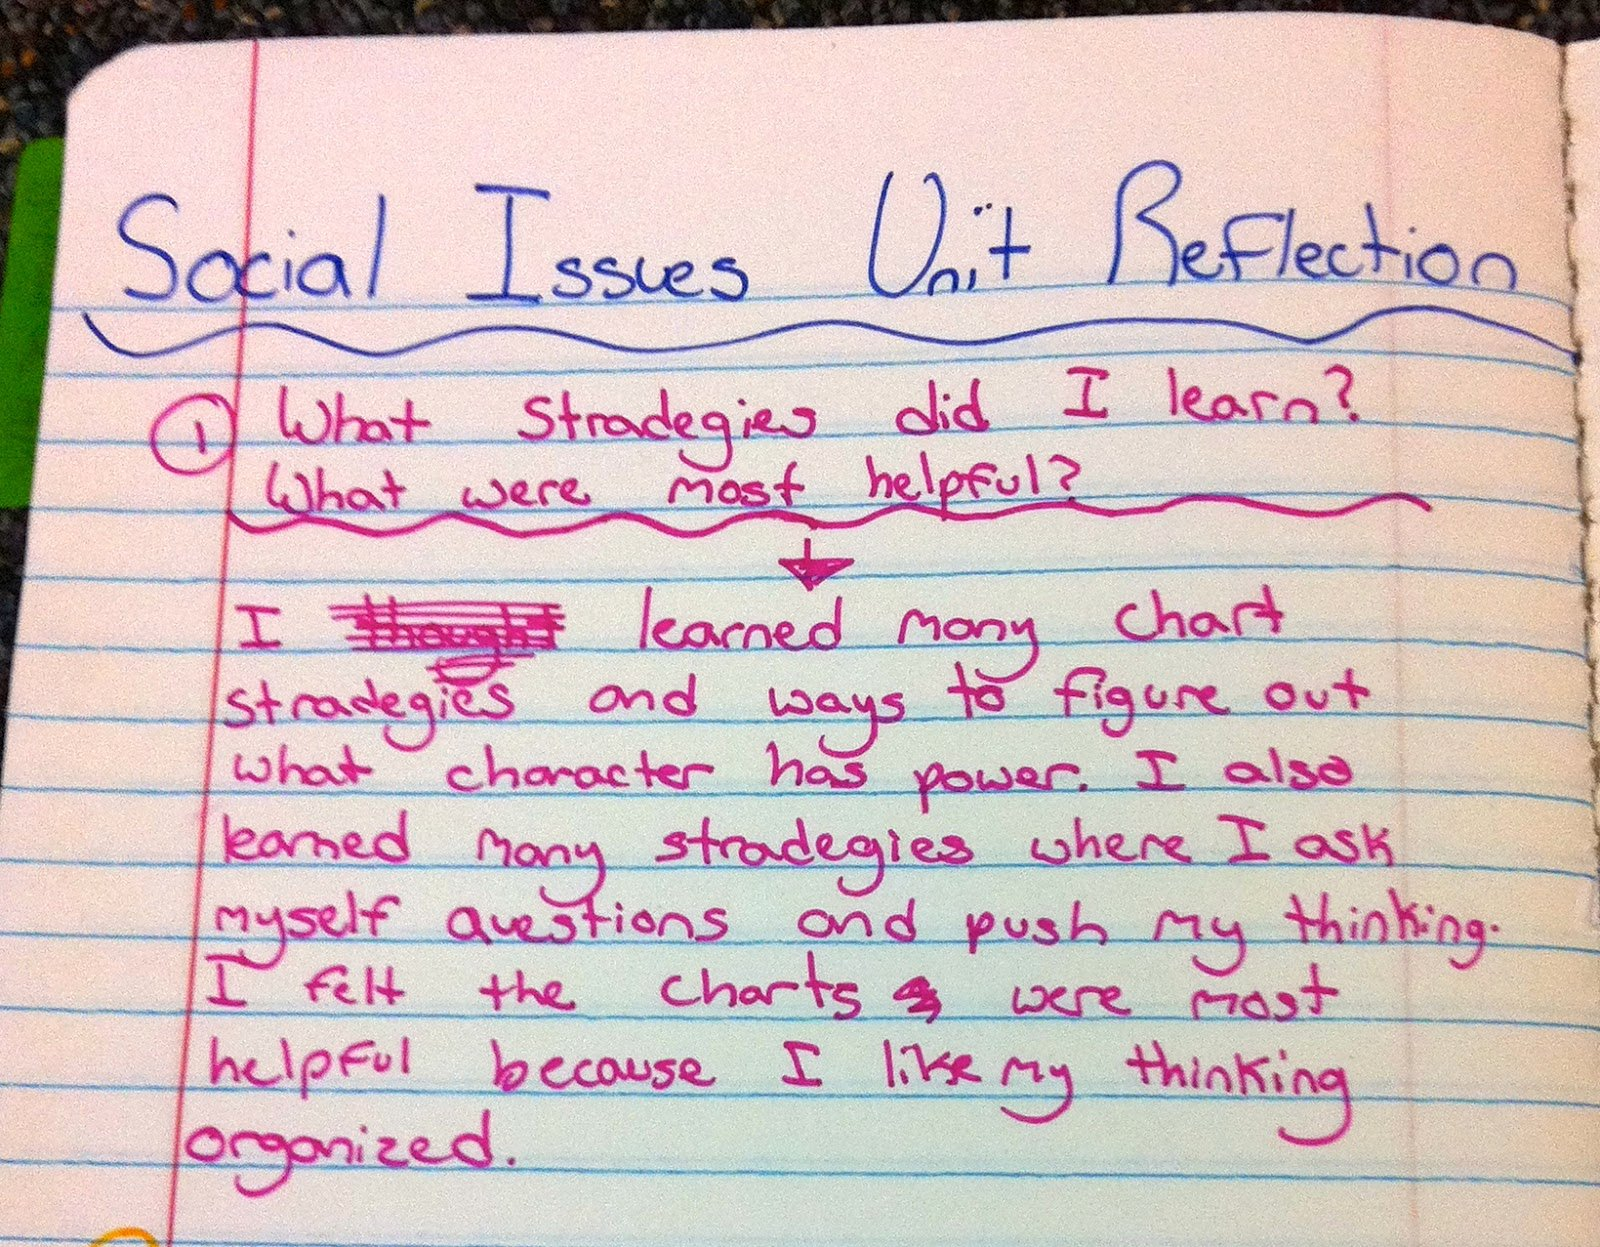 Book Reflection Paper Example New Two Reflective Teachers social issues Book Club Unit